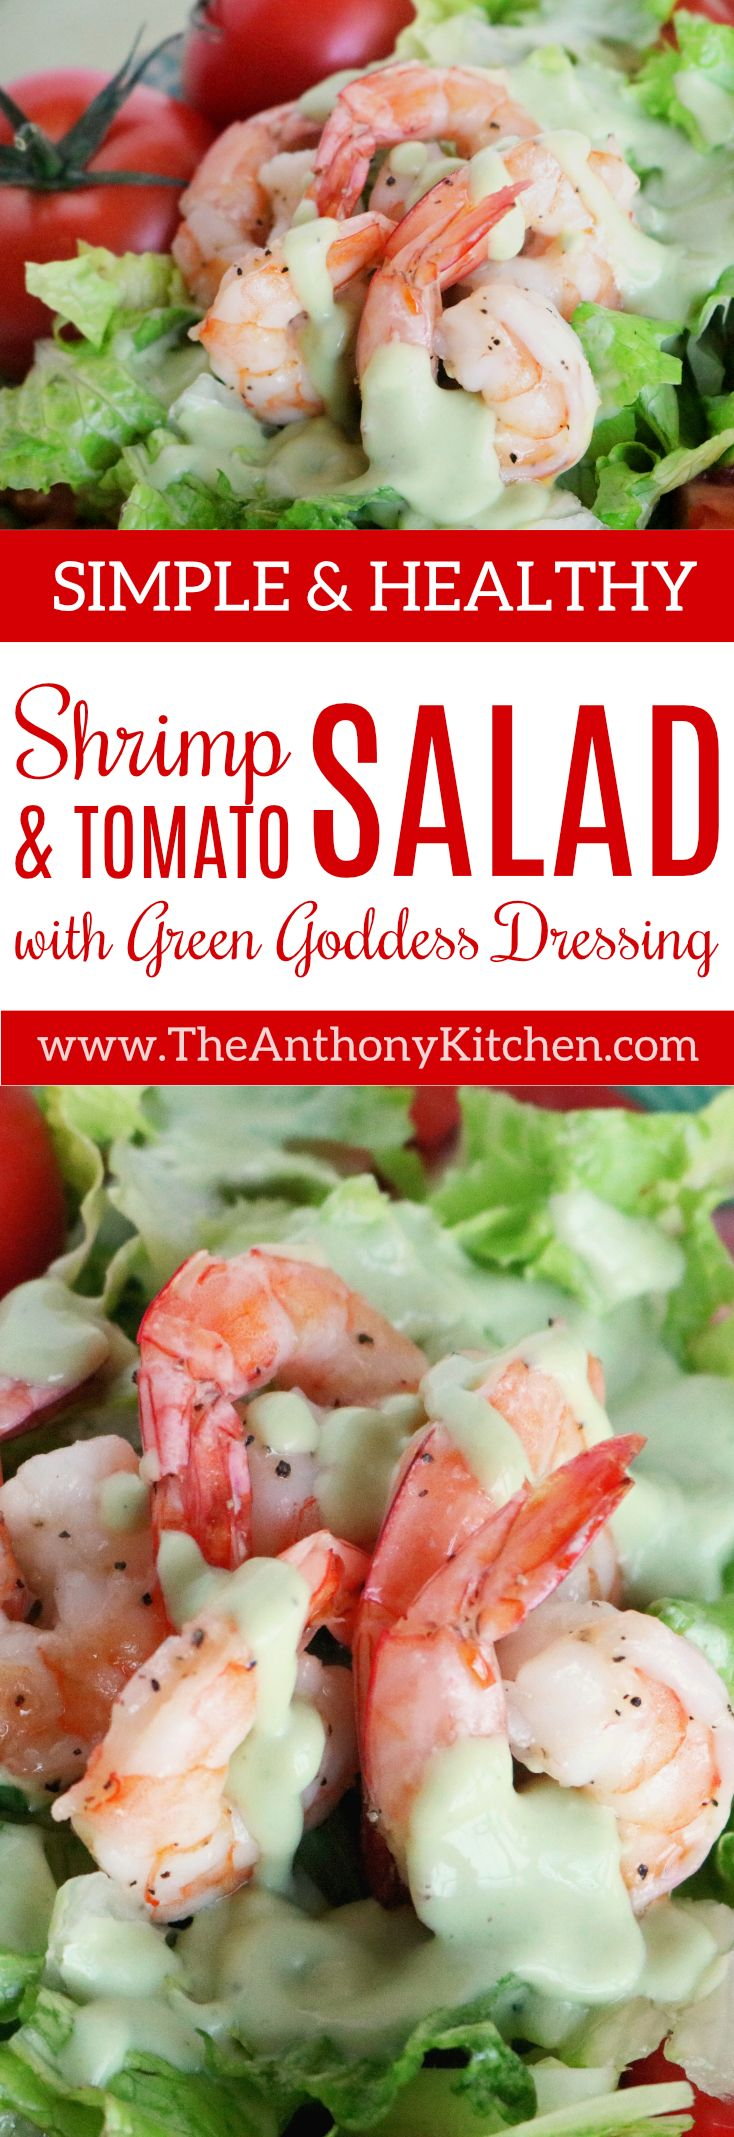 Healthy Shrimp Recipe   Shrimp and Tomato Salad with Green Goddess Dressing   An easy tomato recipe featuring shrimp, tomatoes and Romaine lettuce, topped with homemade Green Goddess Dressing   #shrimprecipe #freshtomatorecipe #simplesaladrecipe #healthyrecipes